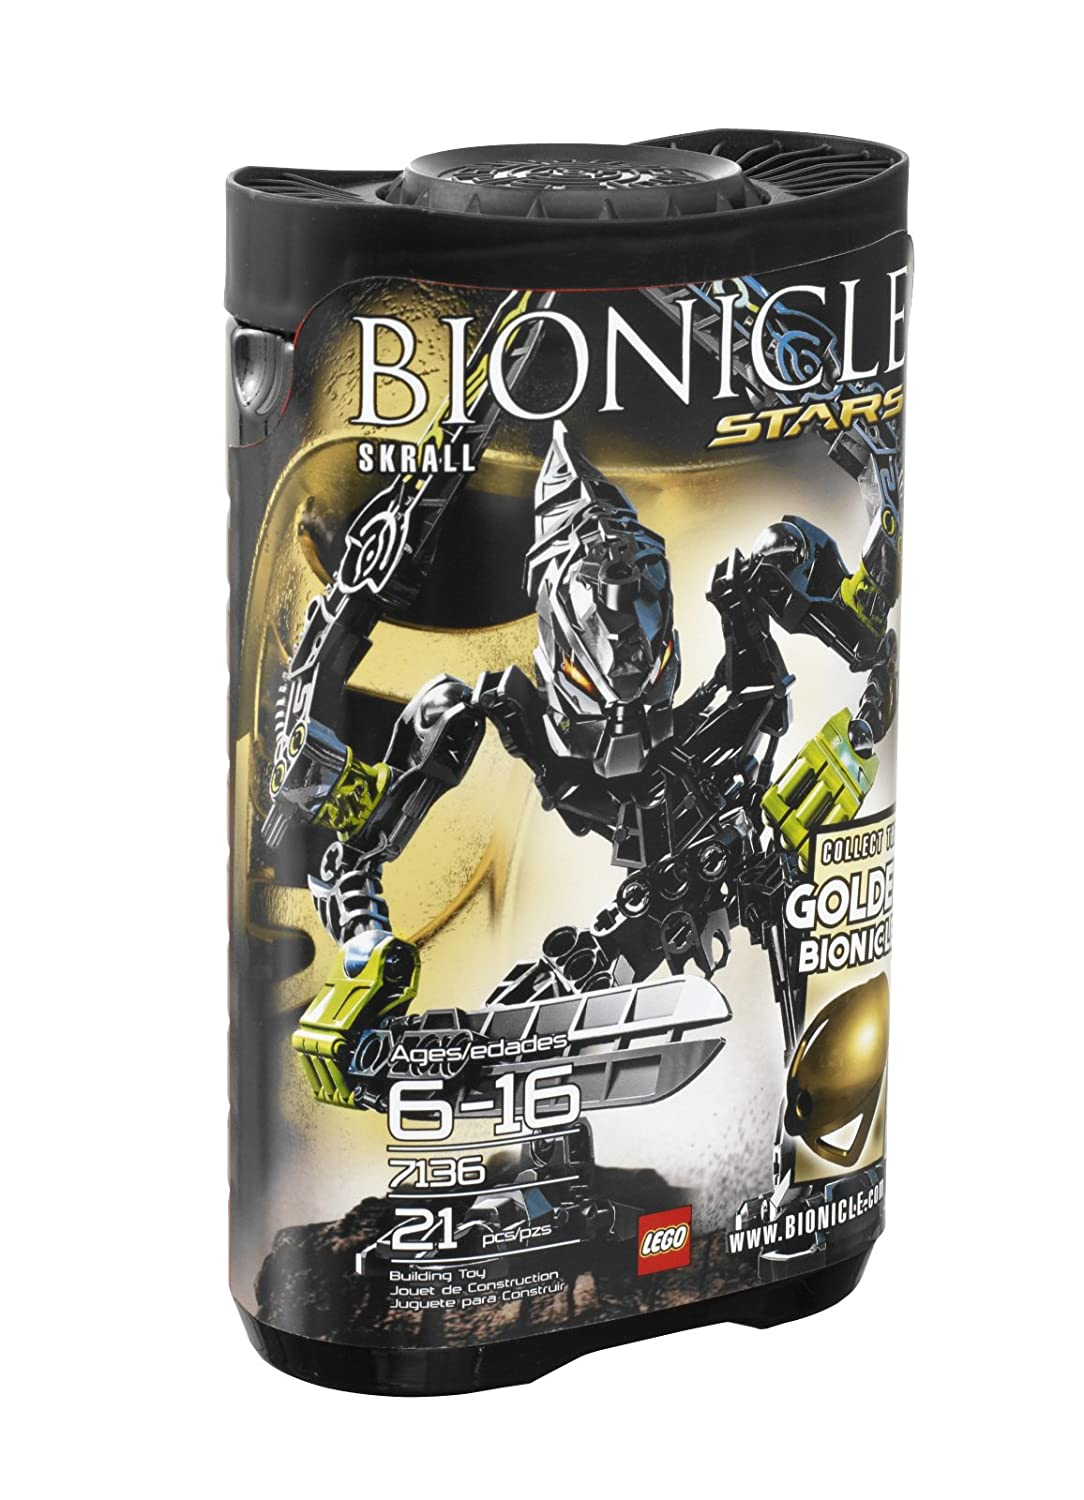 15 Best Lego BIONICLE Sets Reviews of 2021 11